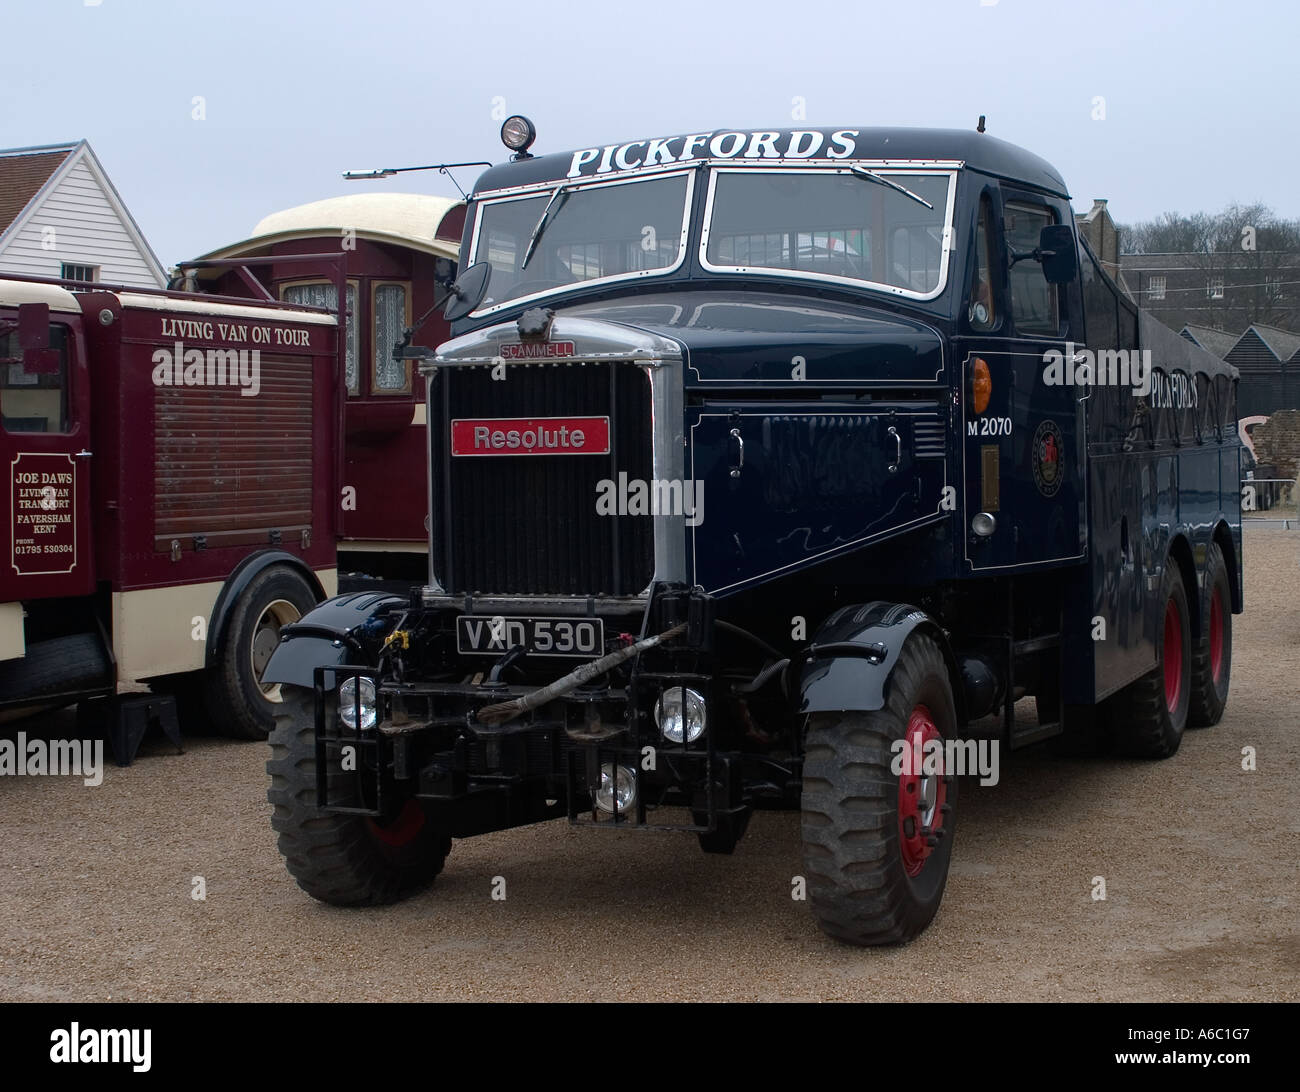 Pickfords Scammell Heavy Goods Haulage Lorry called Resolute at Chatham Docks Vintage Transport Day Stock Photo